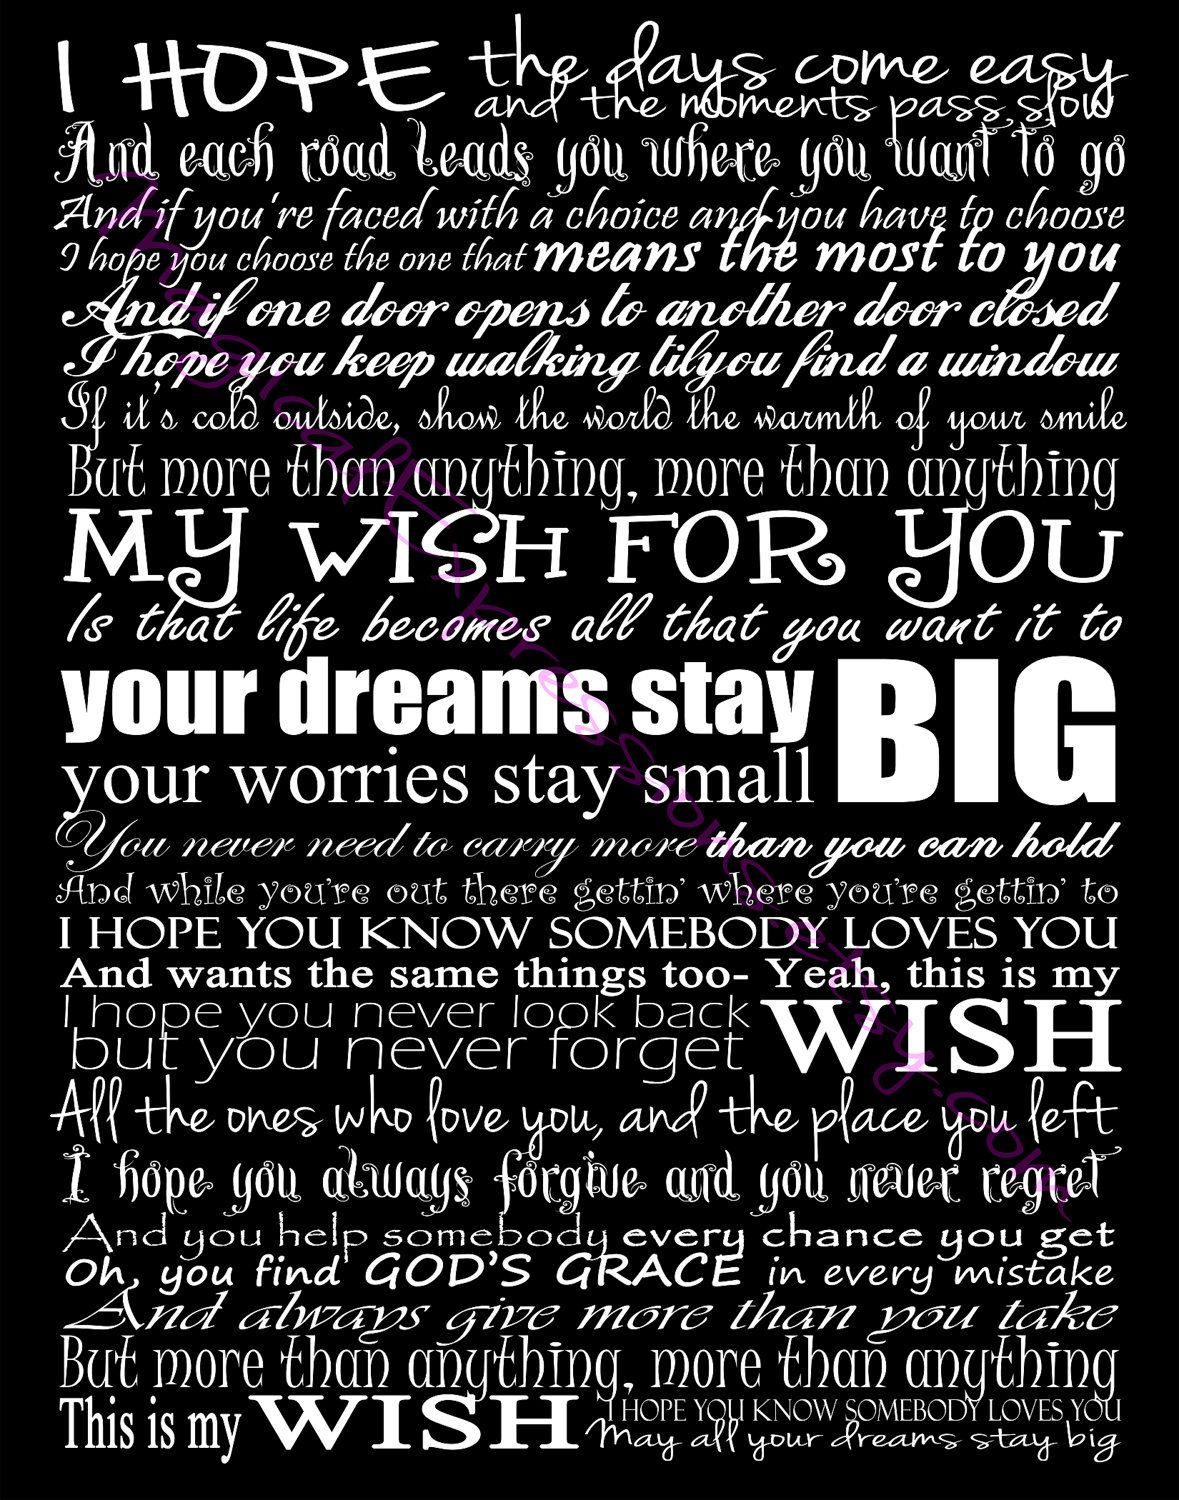 My Wish Lyrics Song Lyrics Art Song Quotes Love Songs